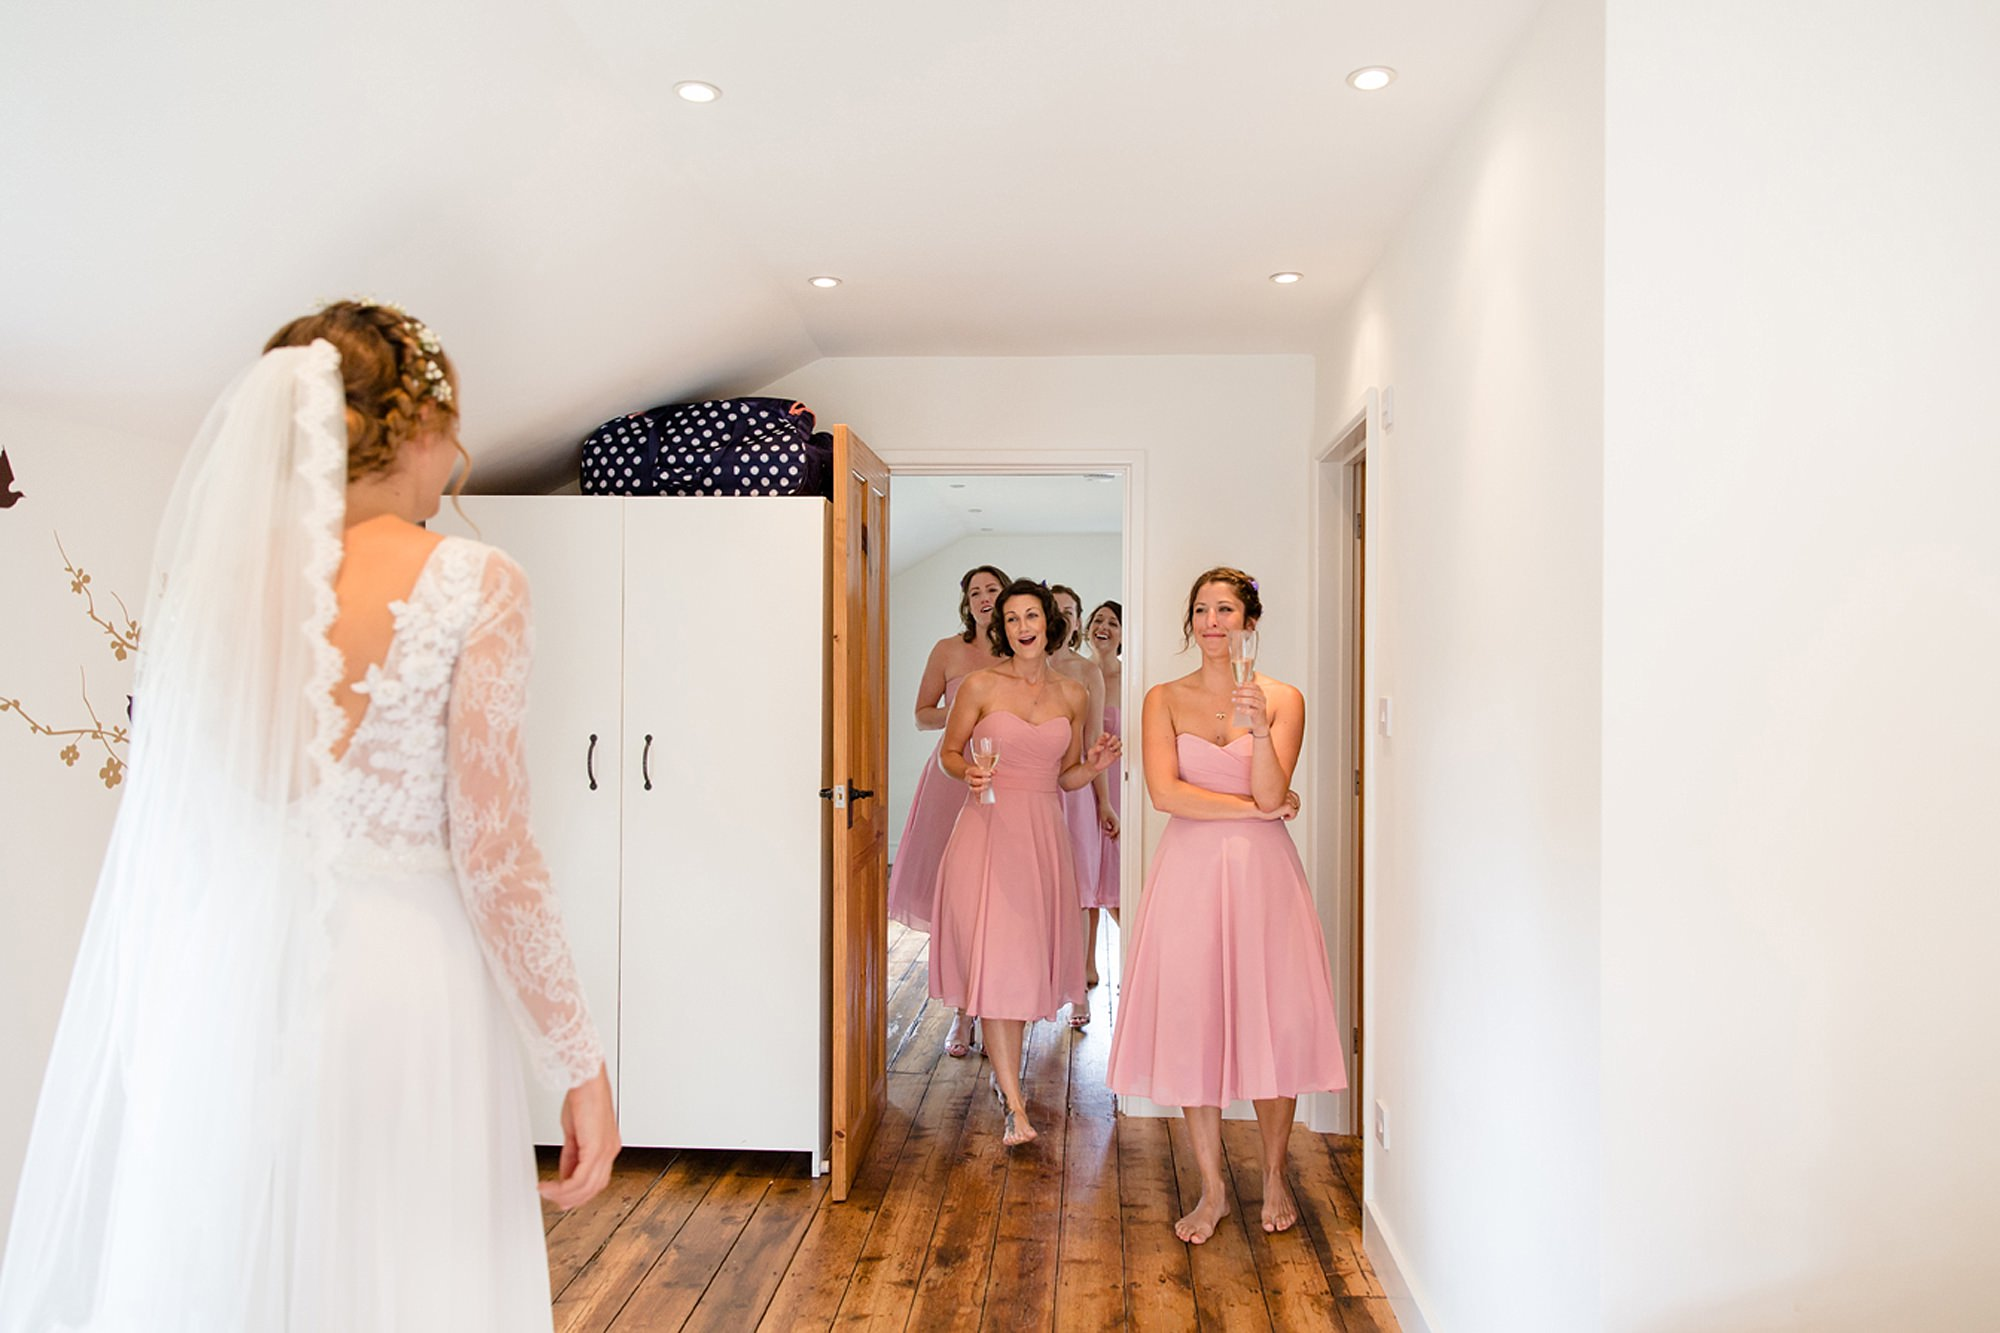 Marks Hall Estate wedding photography bridesmaids see bride in her dress